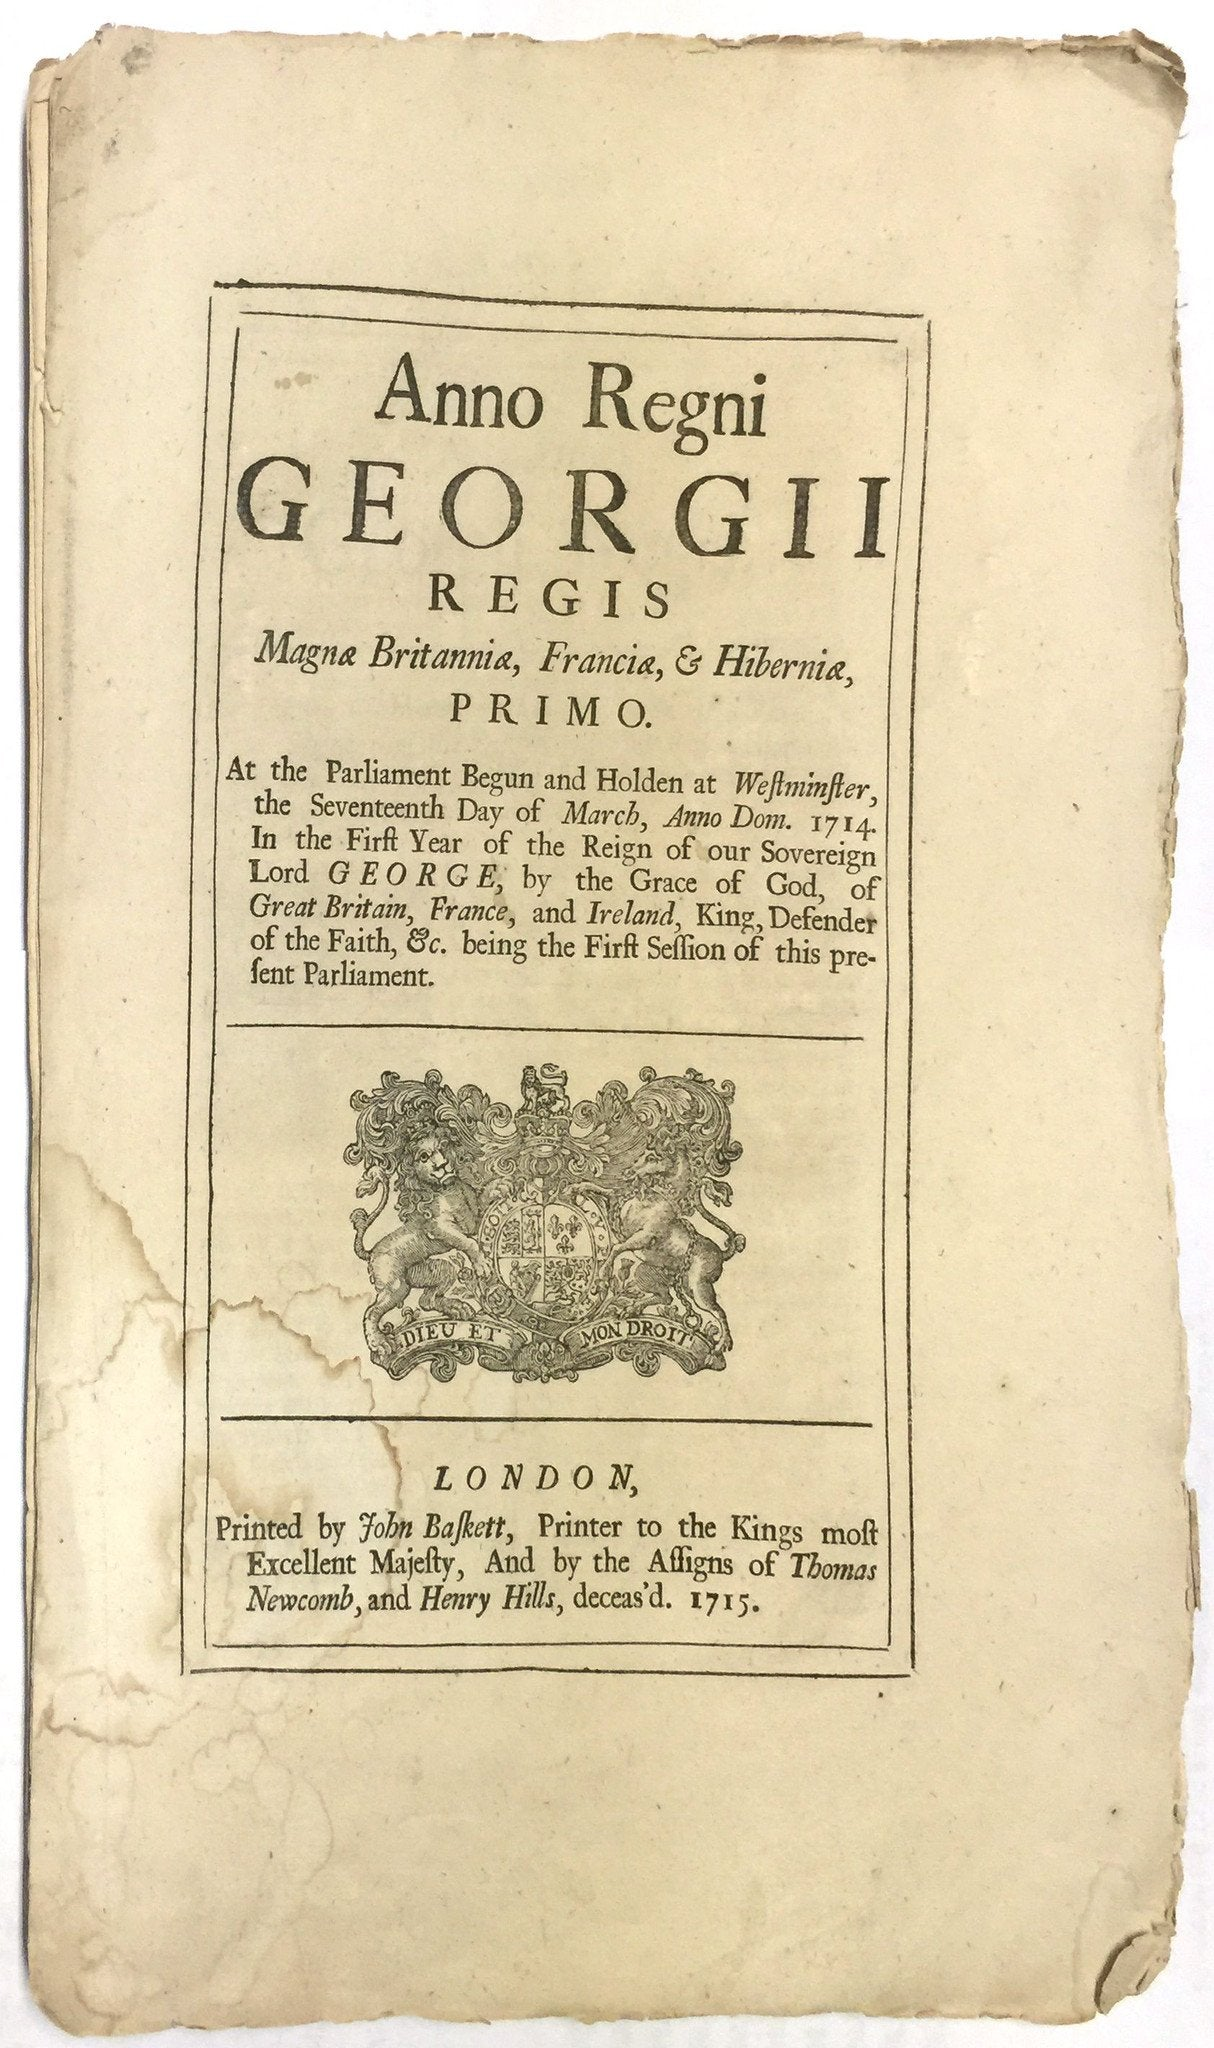 17 March 1714 Act Of Parliament - Product